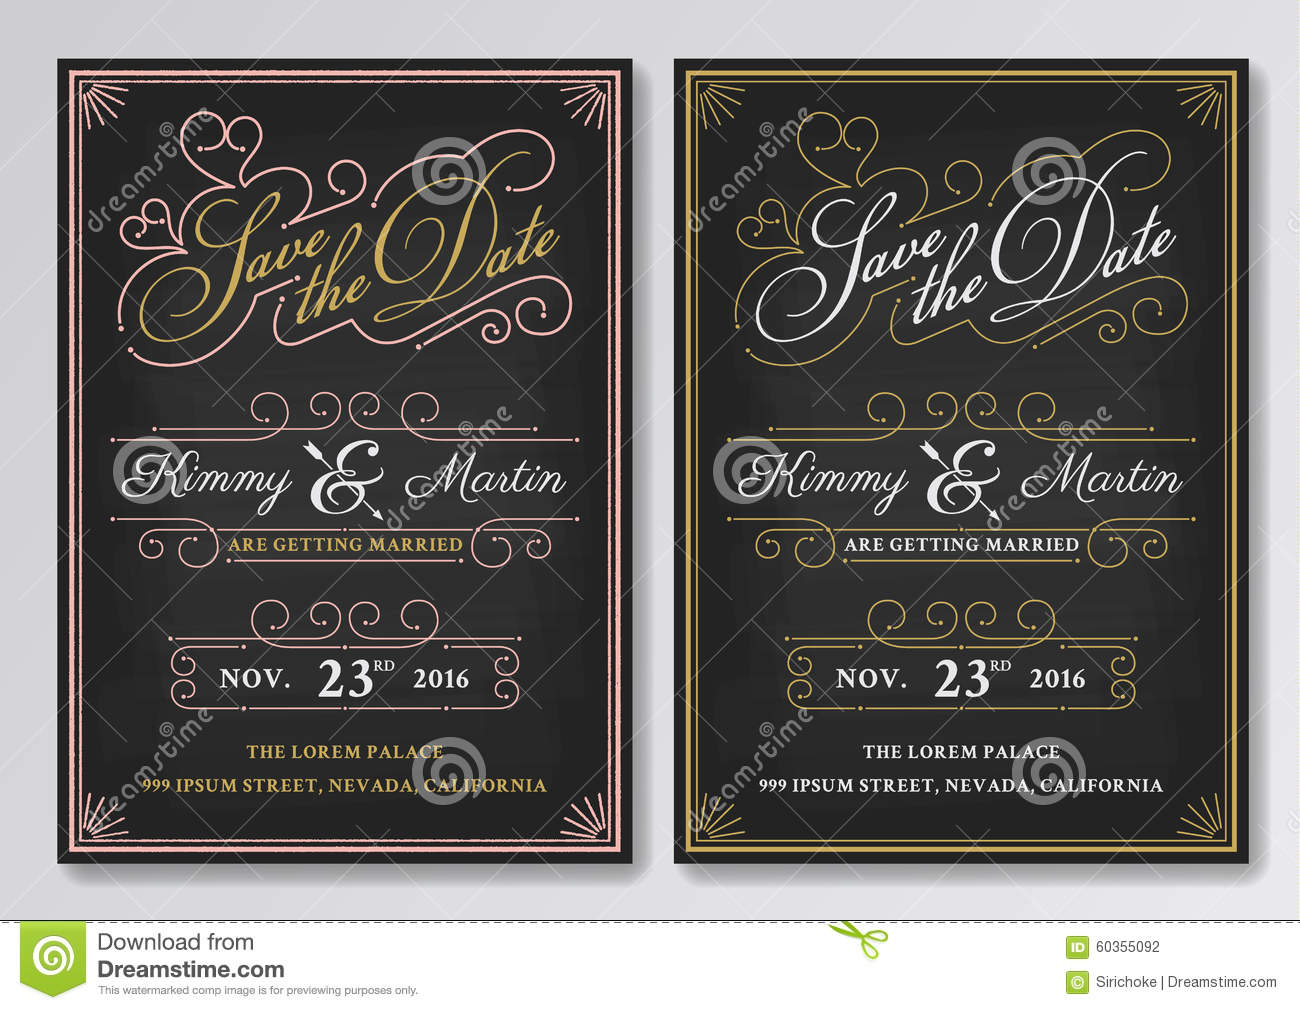 Engagement Invitation Template Free as great invitations example